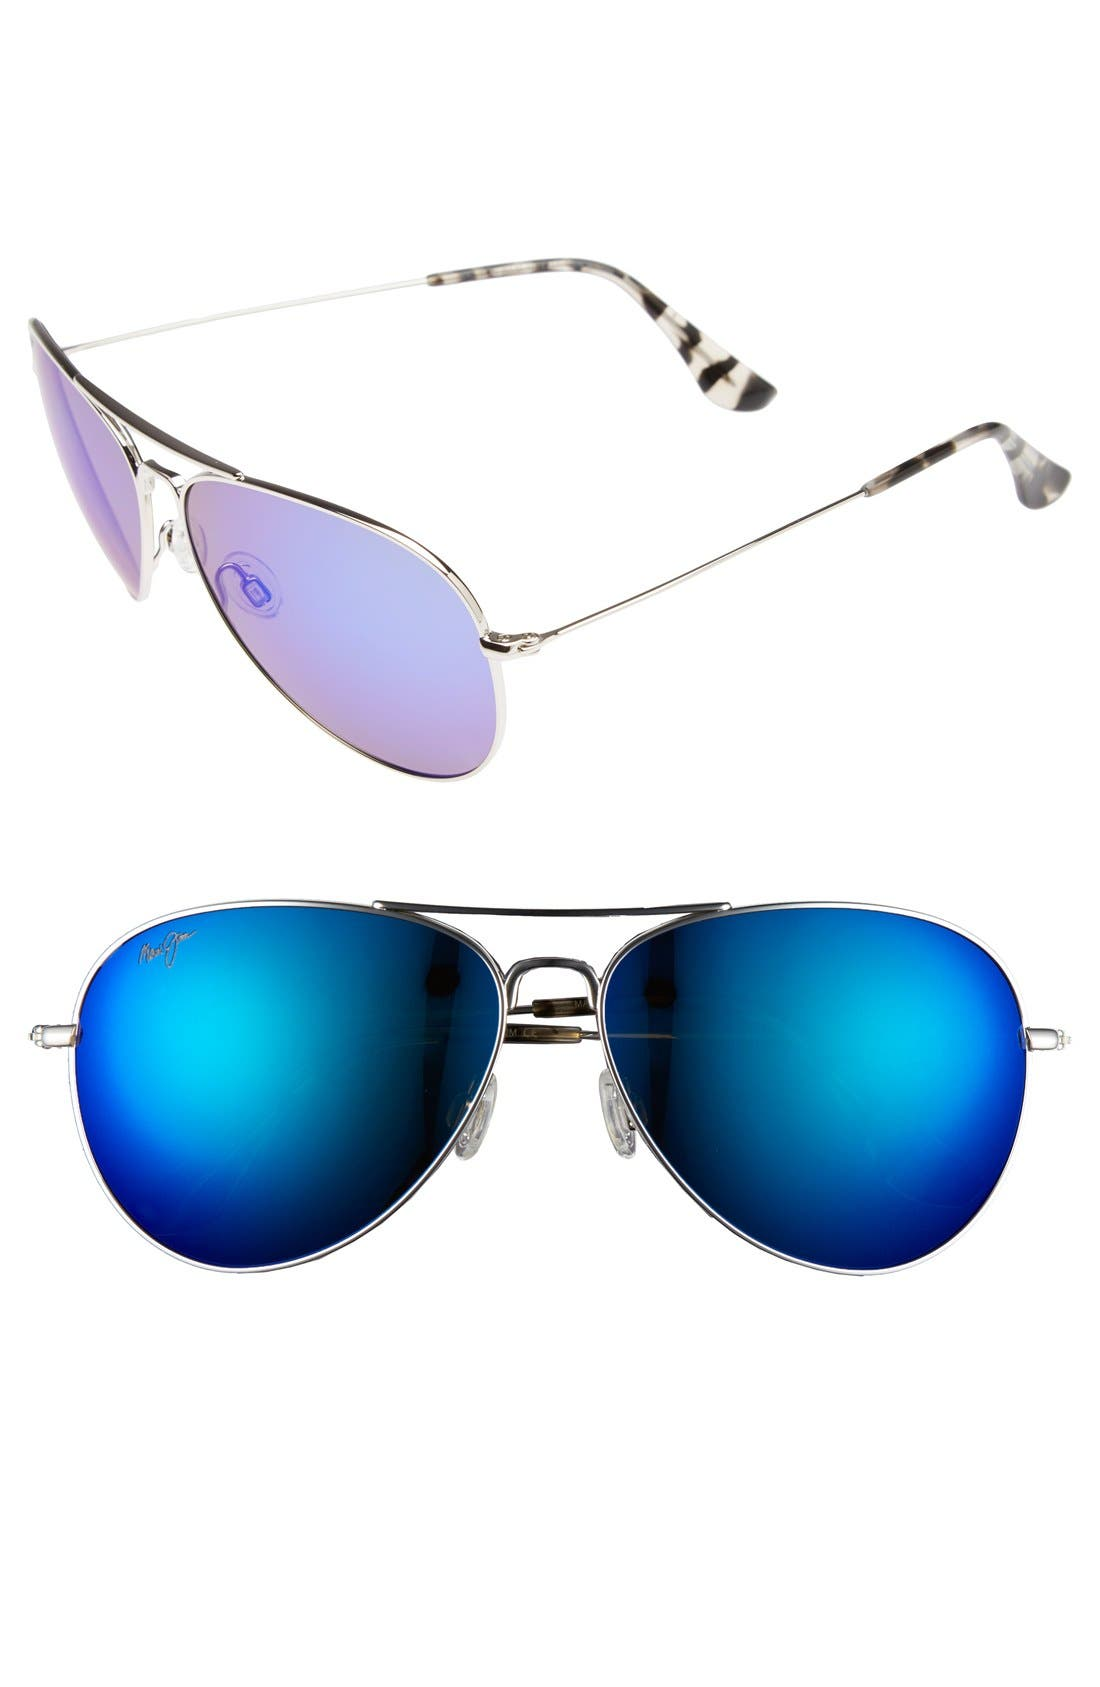 Maui Jim Mavericks 61Mm Polarizedplus2 Aviator Sunglasses - Silver/ Blue Hawaii